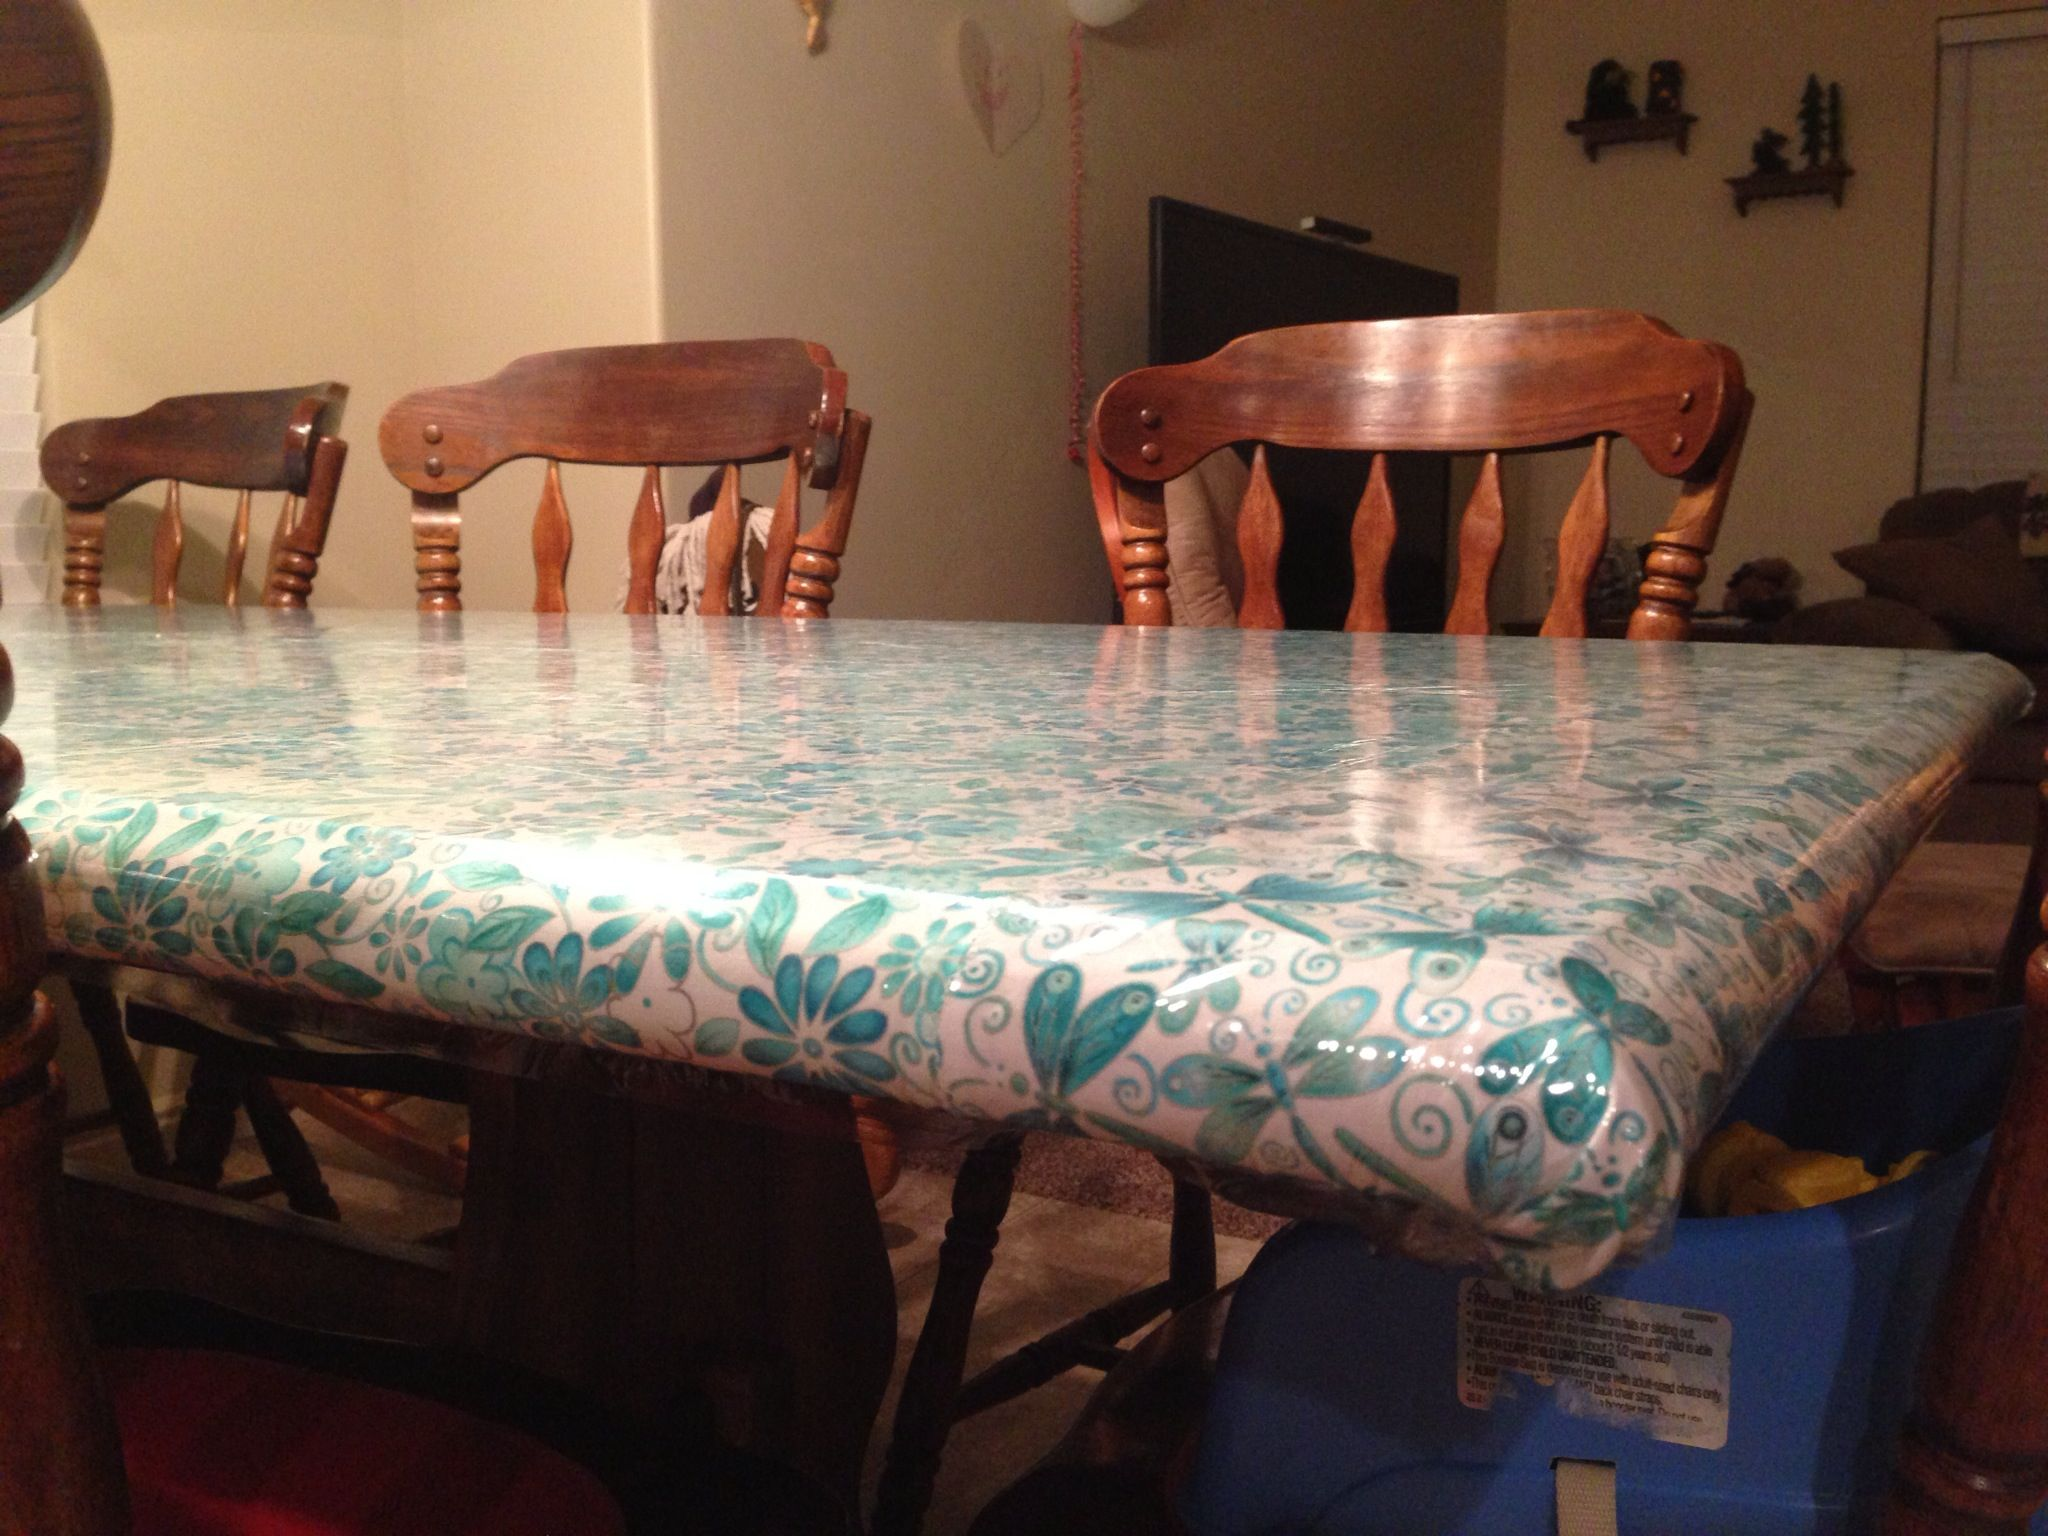 To protect your table from kids and keep your table cloth